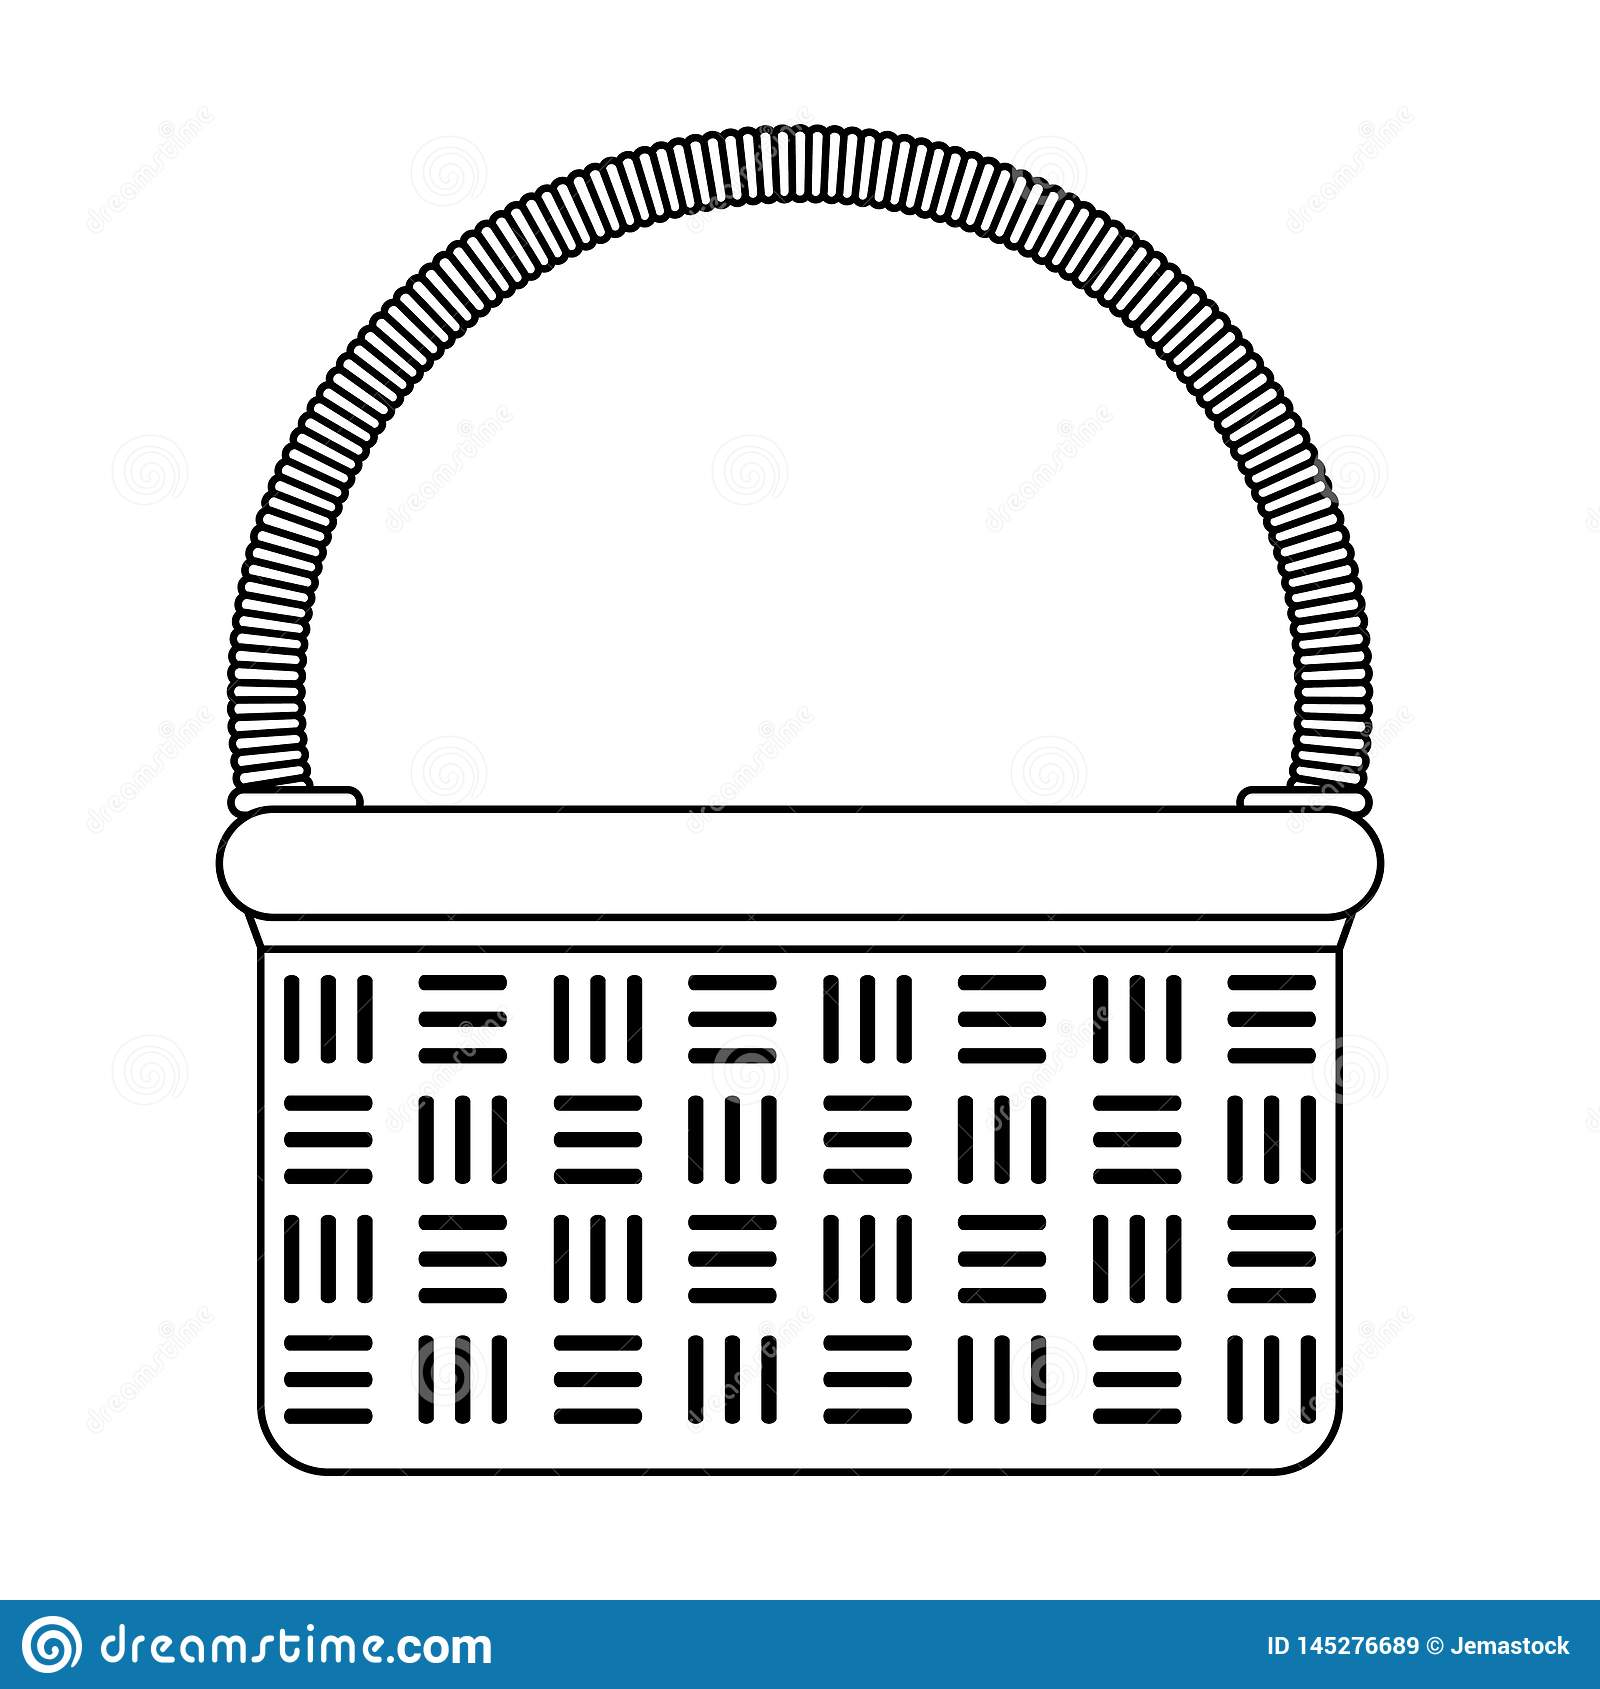 Picnic Basket Cartoon Stock Illustrations 3 223 Picnic Basket Cartoon Stock Illustrations Vectors Clipart Dreamstime